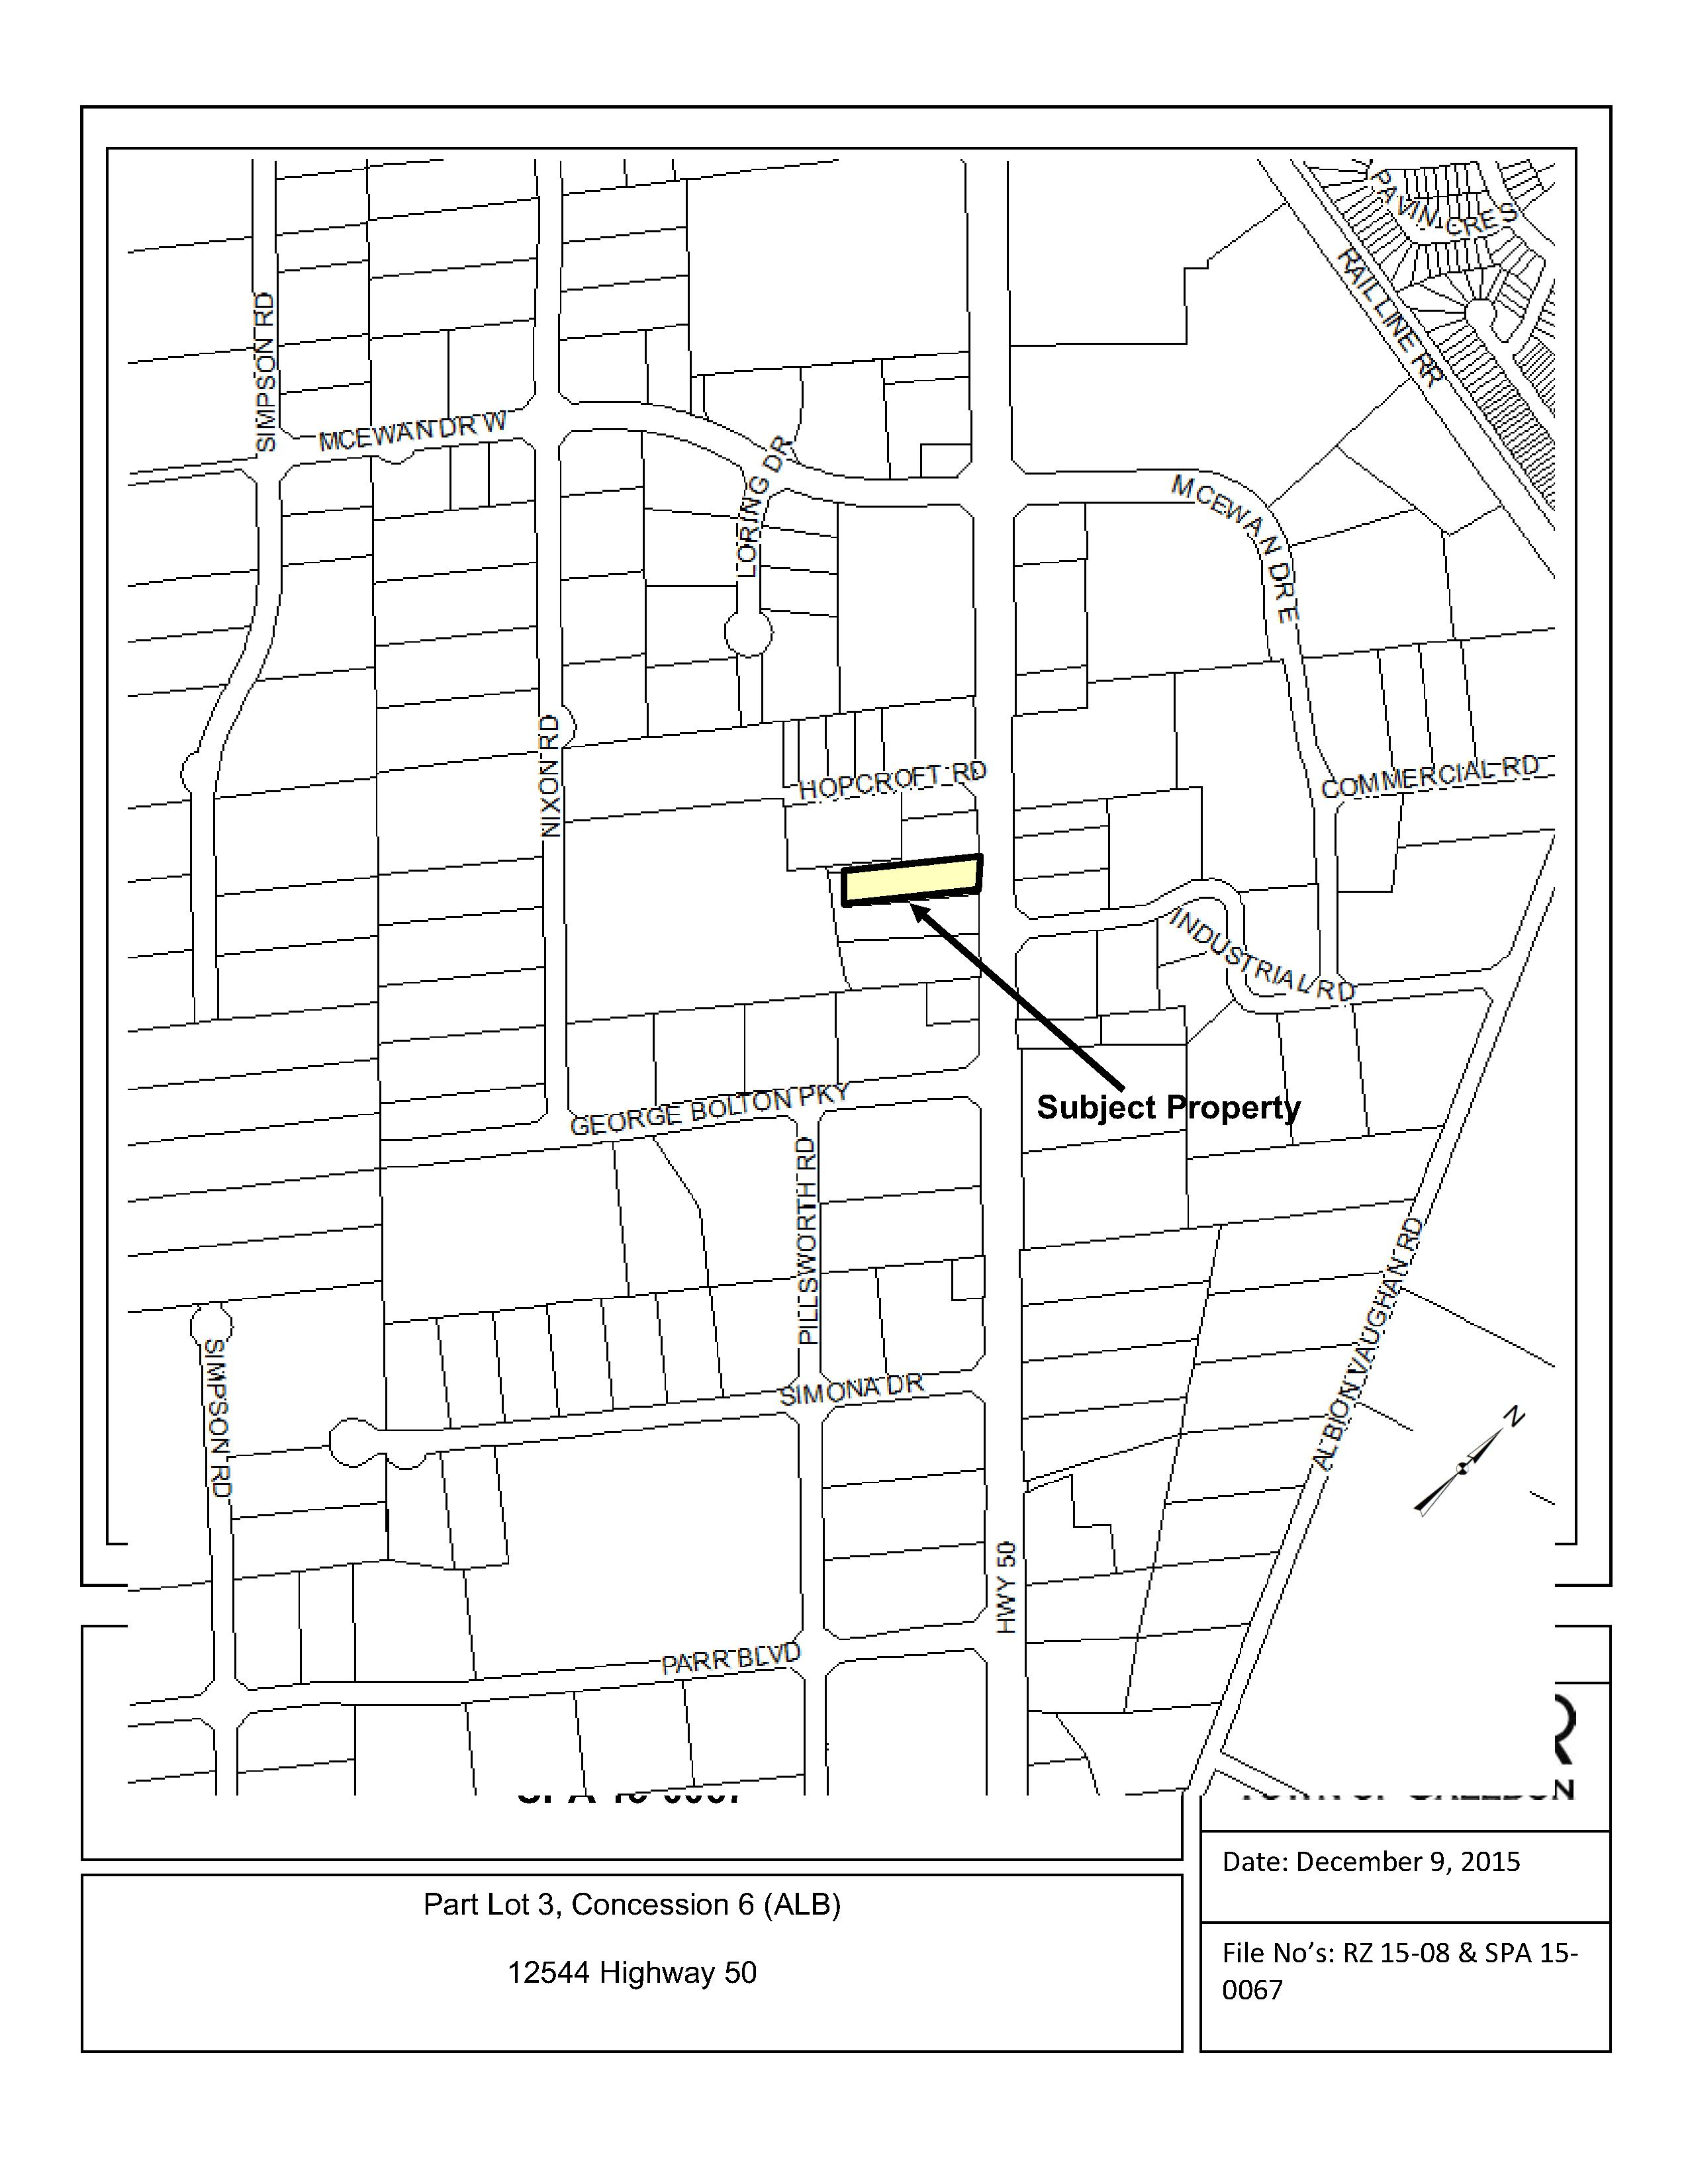 Map of Subject Property at 12544 Highway 50